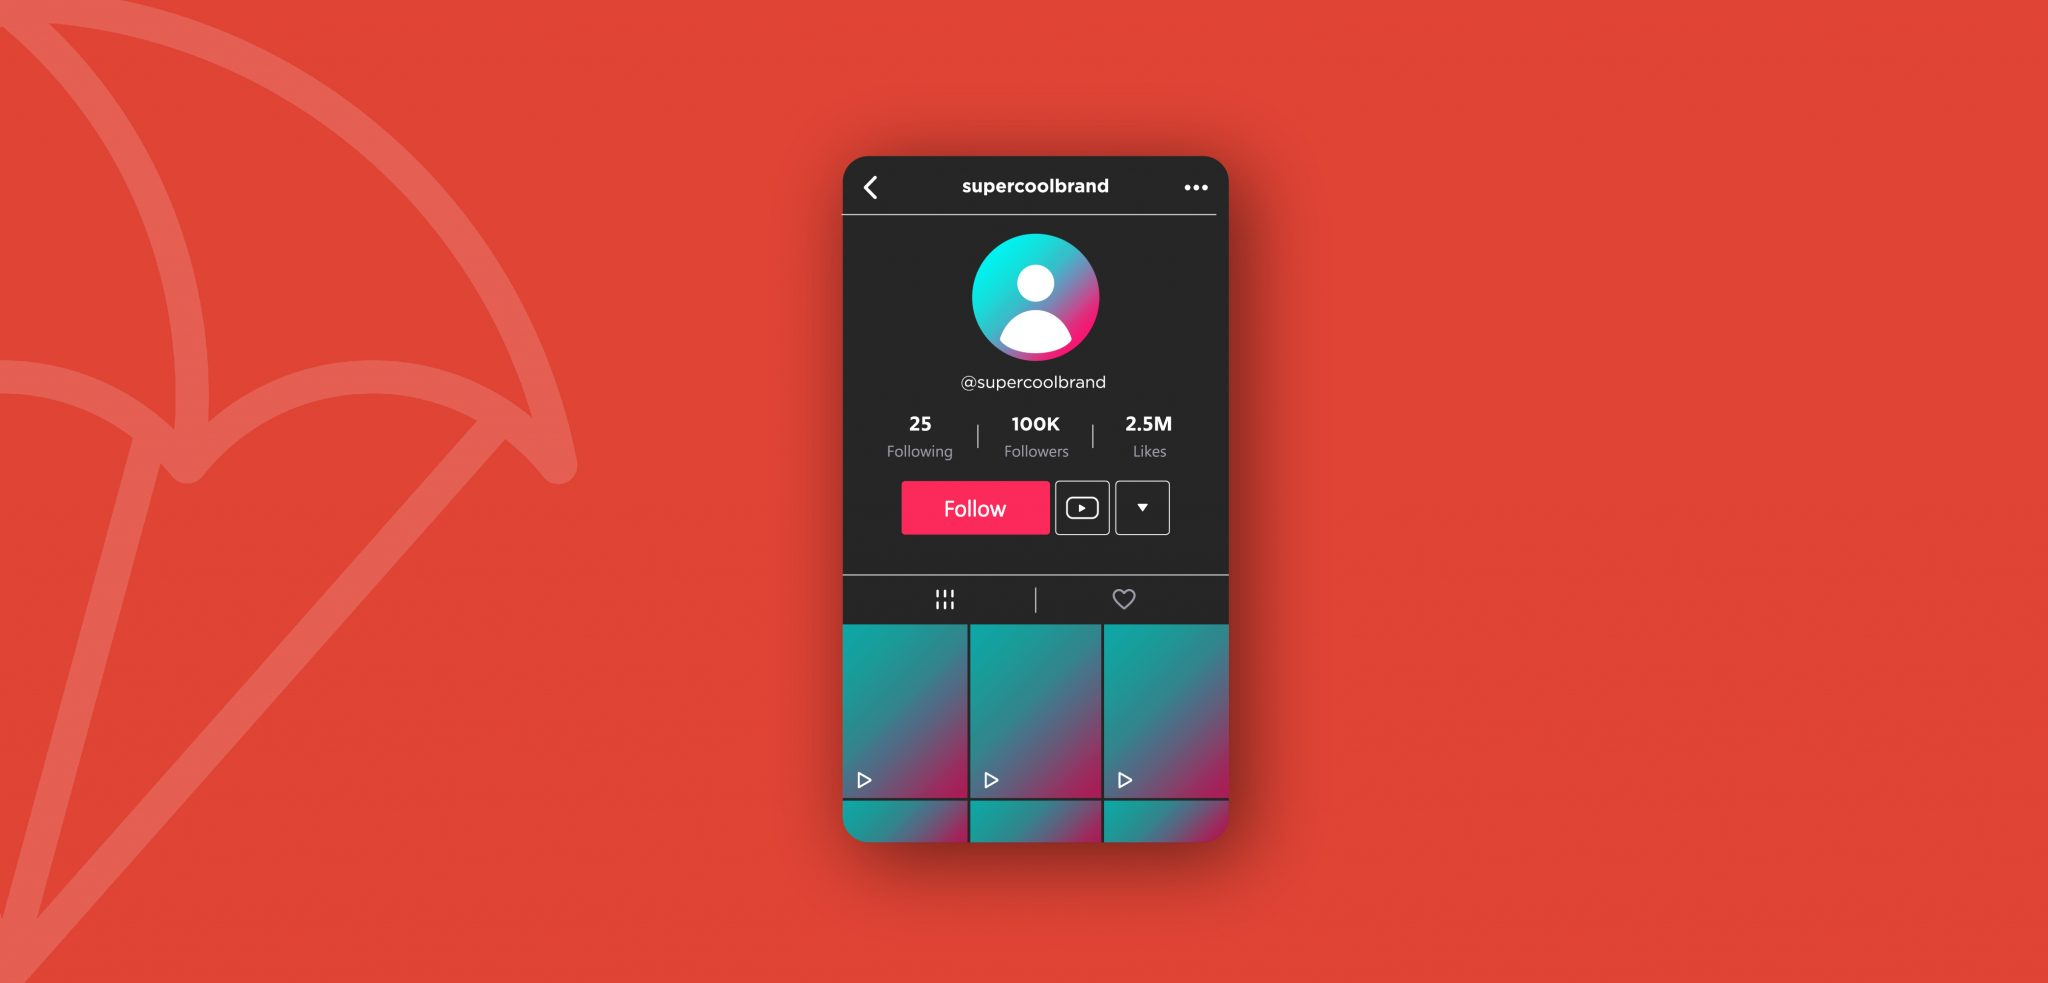 A graphic with a bright red background and a graphic of the TikTok interface of a user profile.